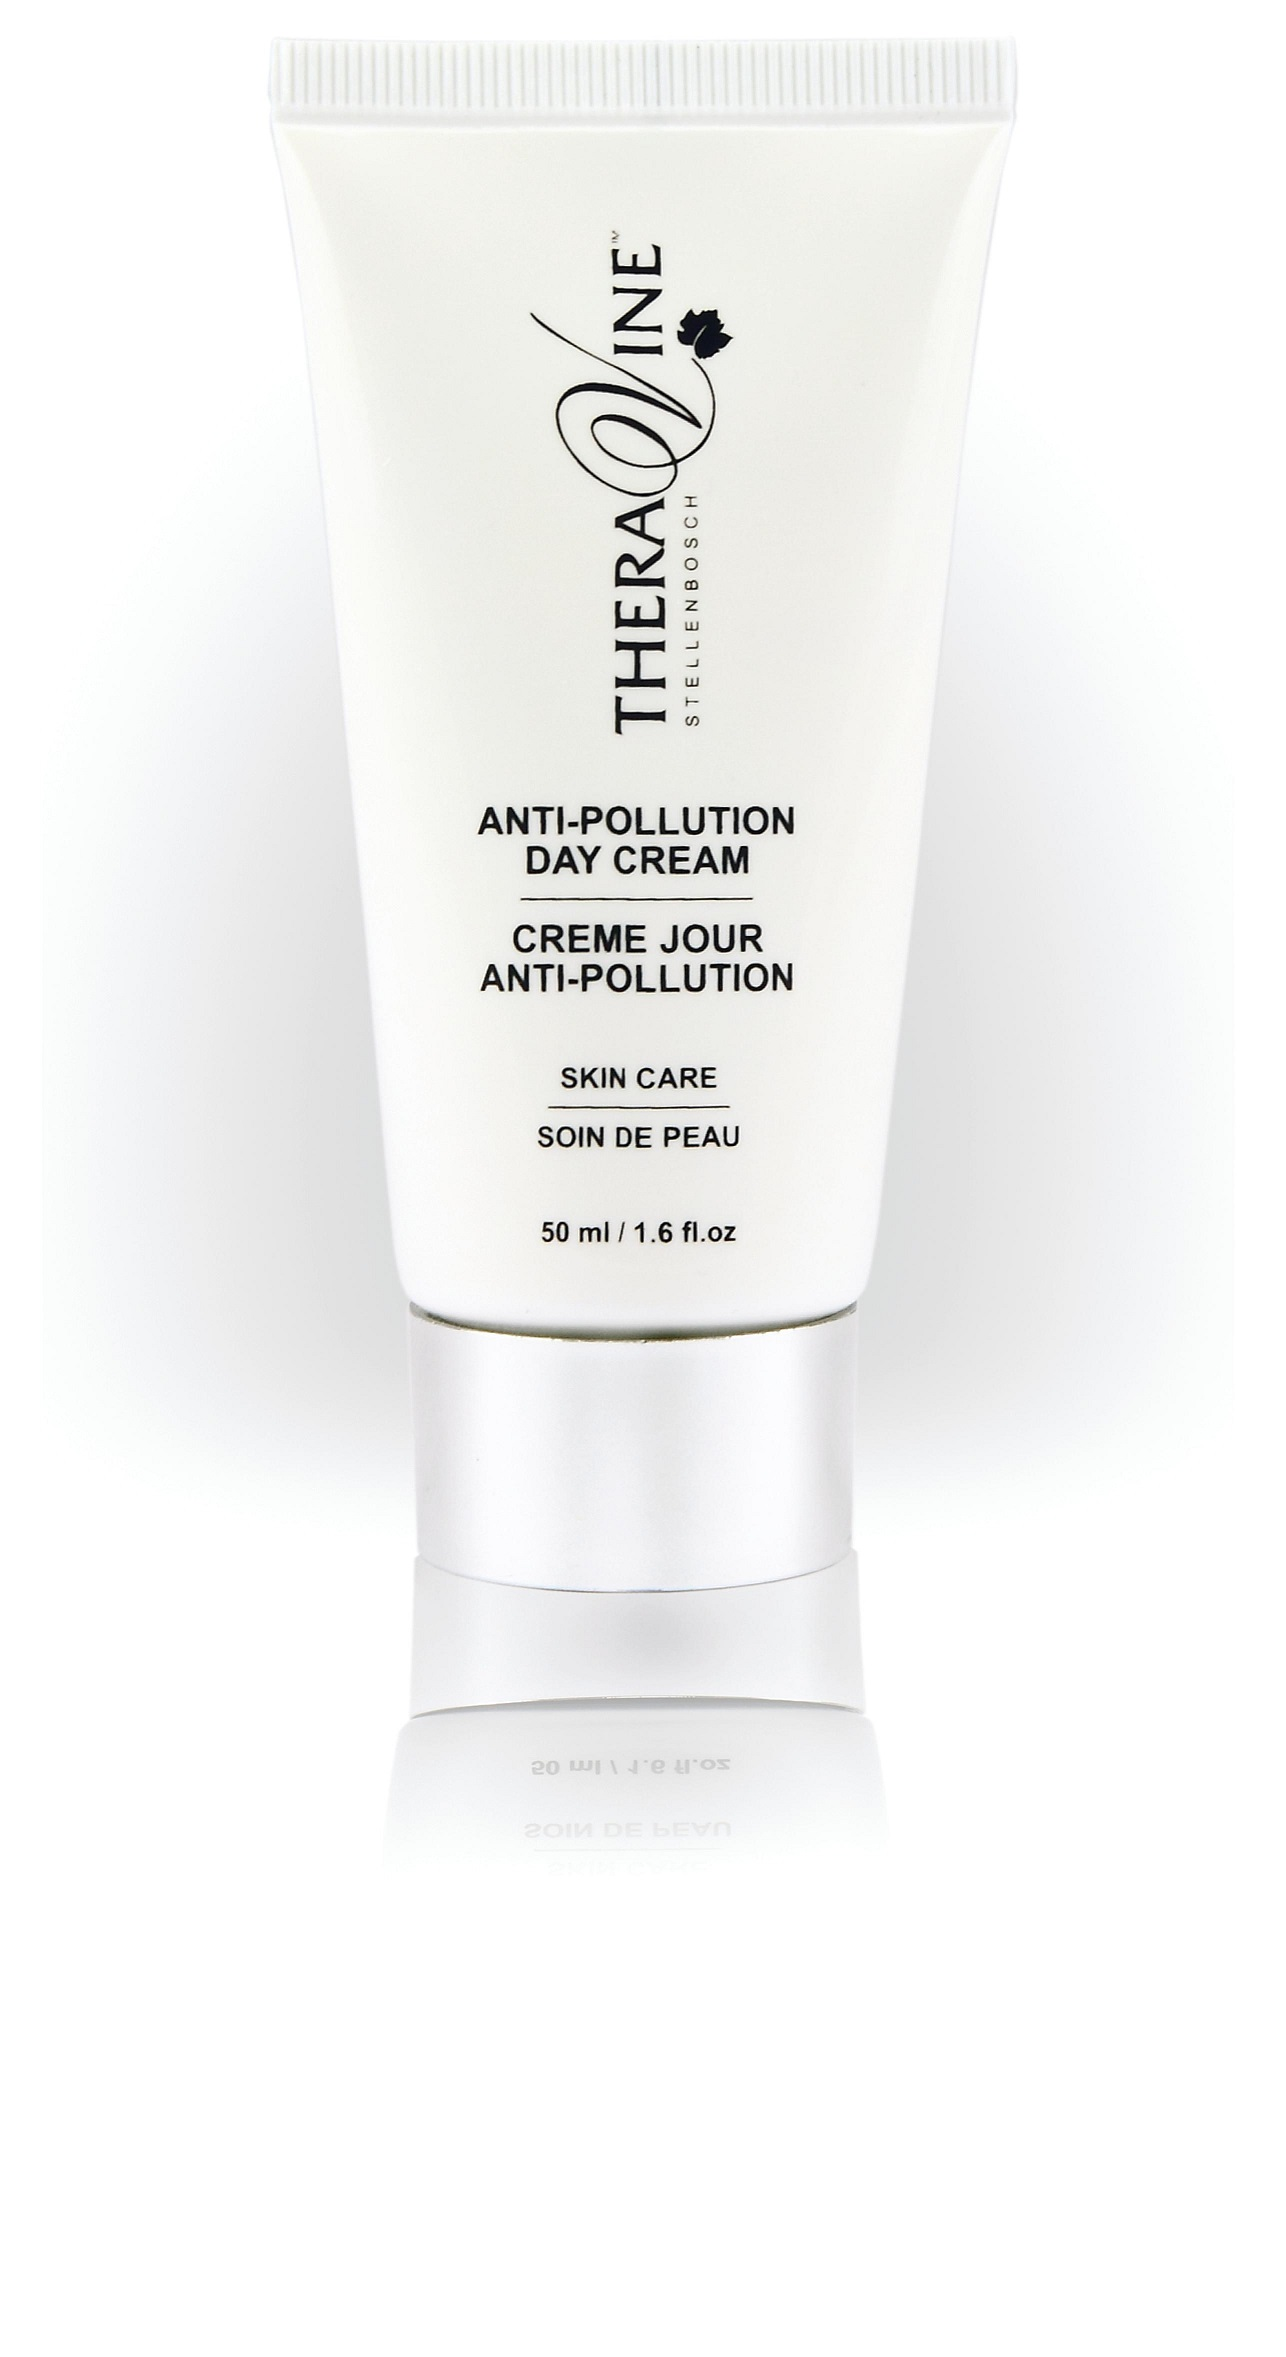 Anti-Pollution Day Cream